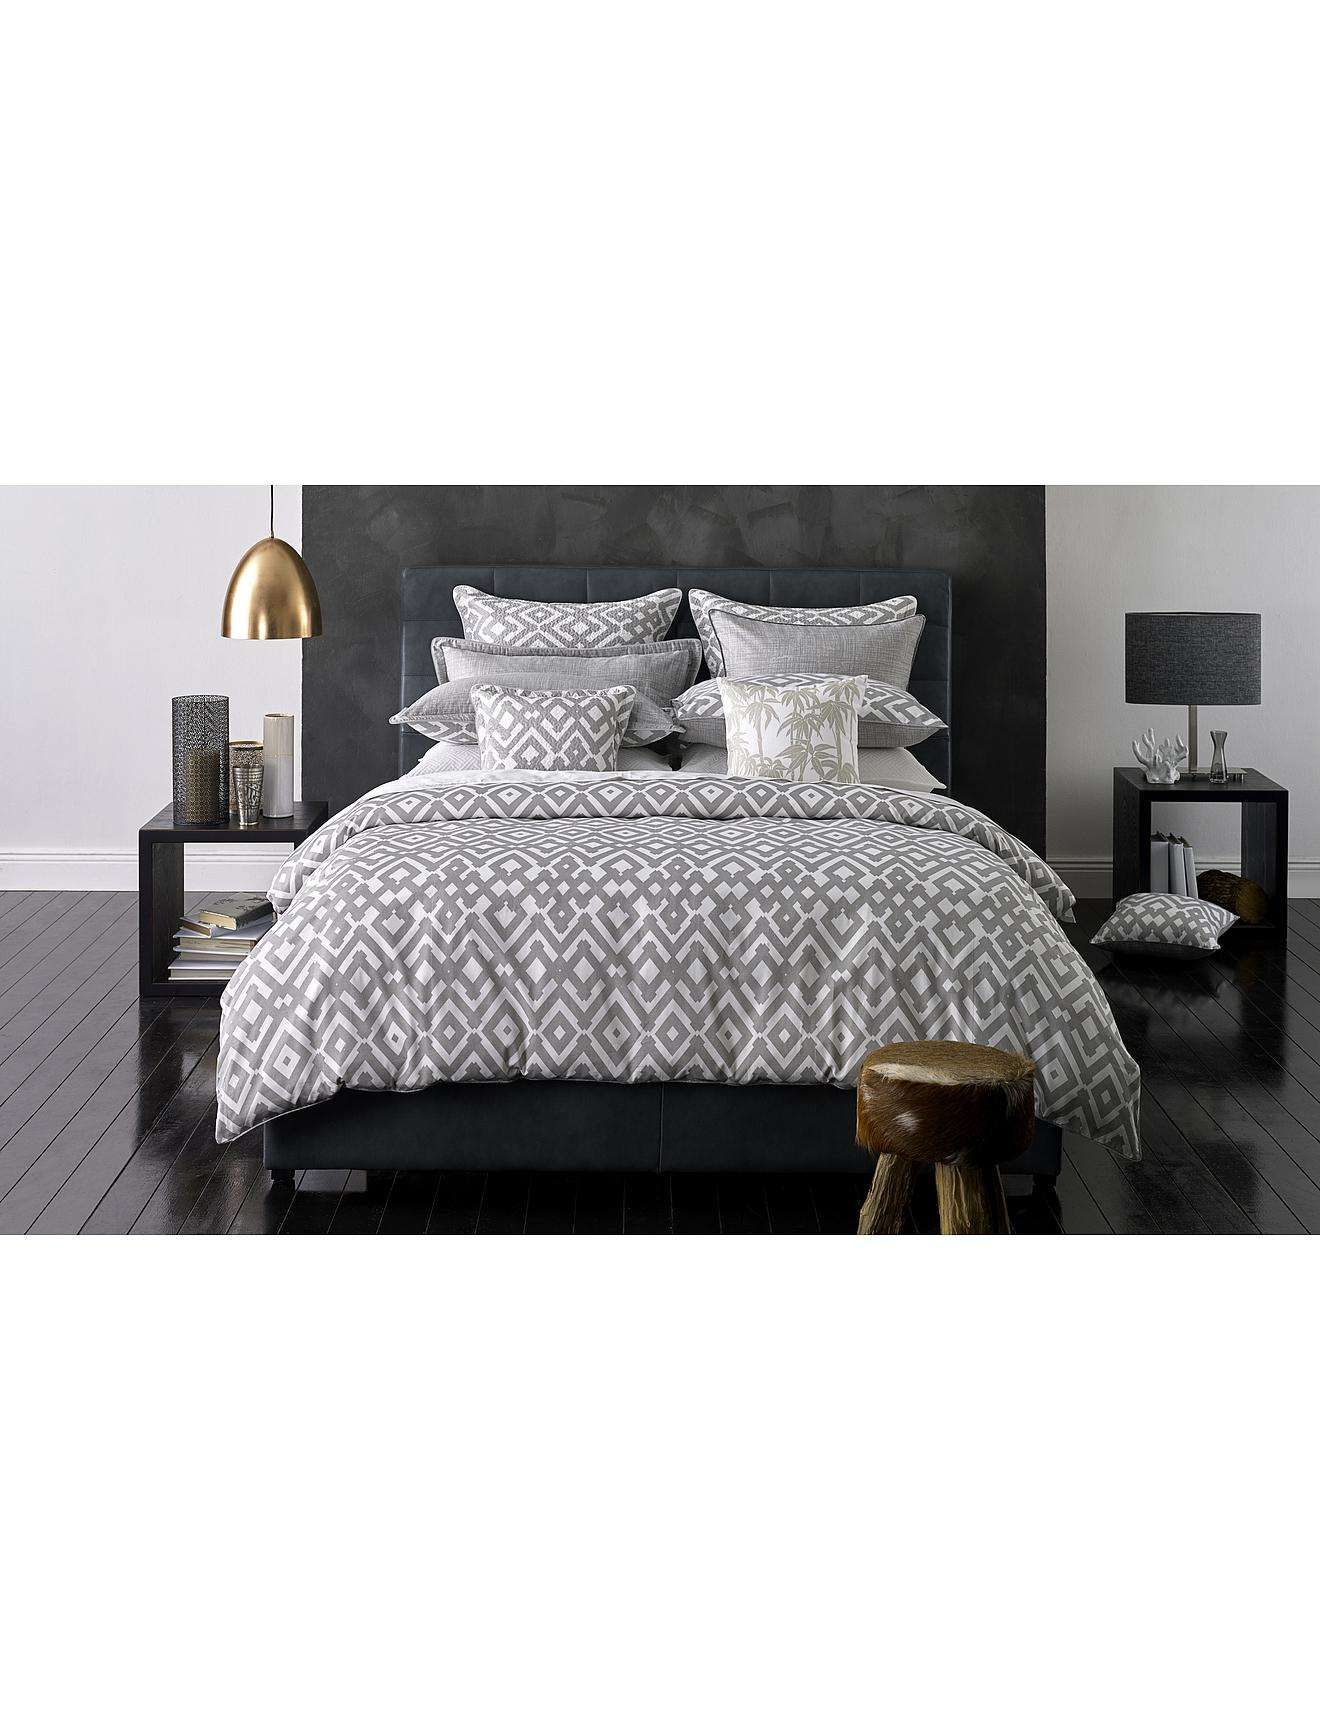 Zig Zag Natural Quilt Cover Set Queen | David Jones | Home ... : quilt cover sets david jones - Adamdwight.com